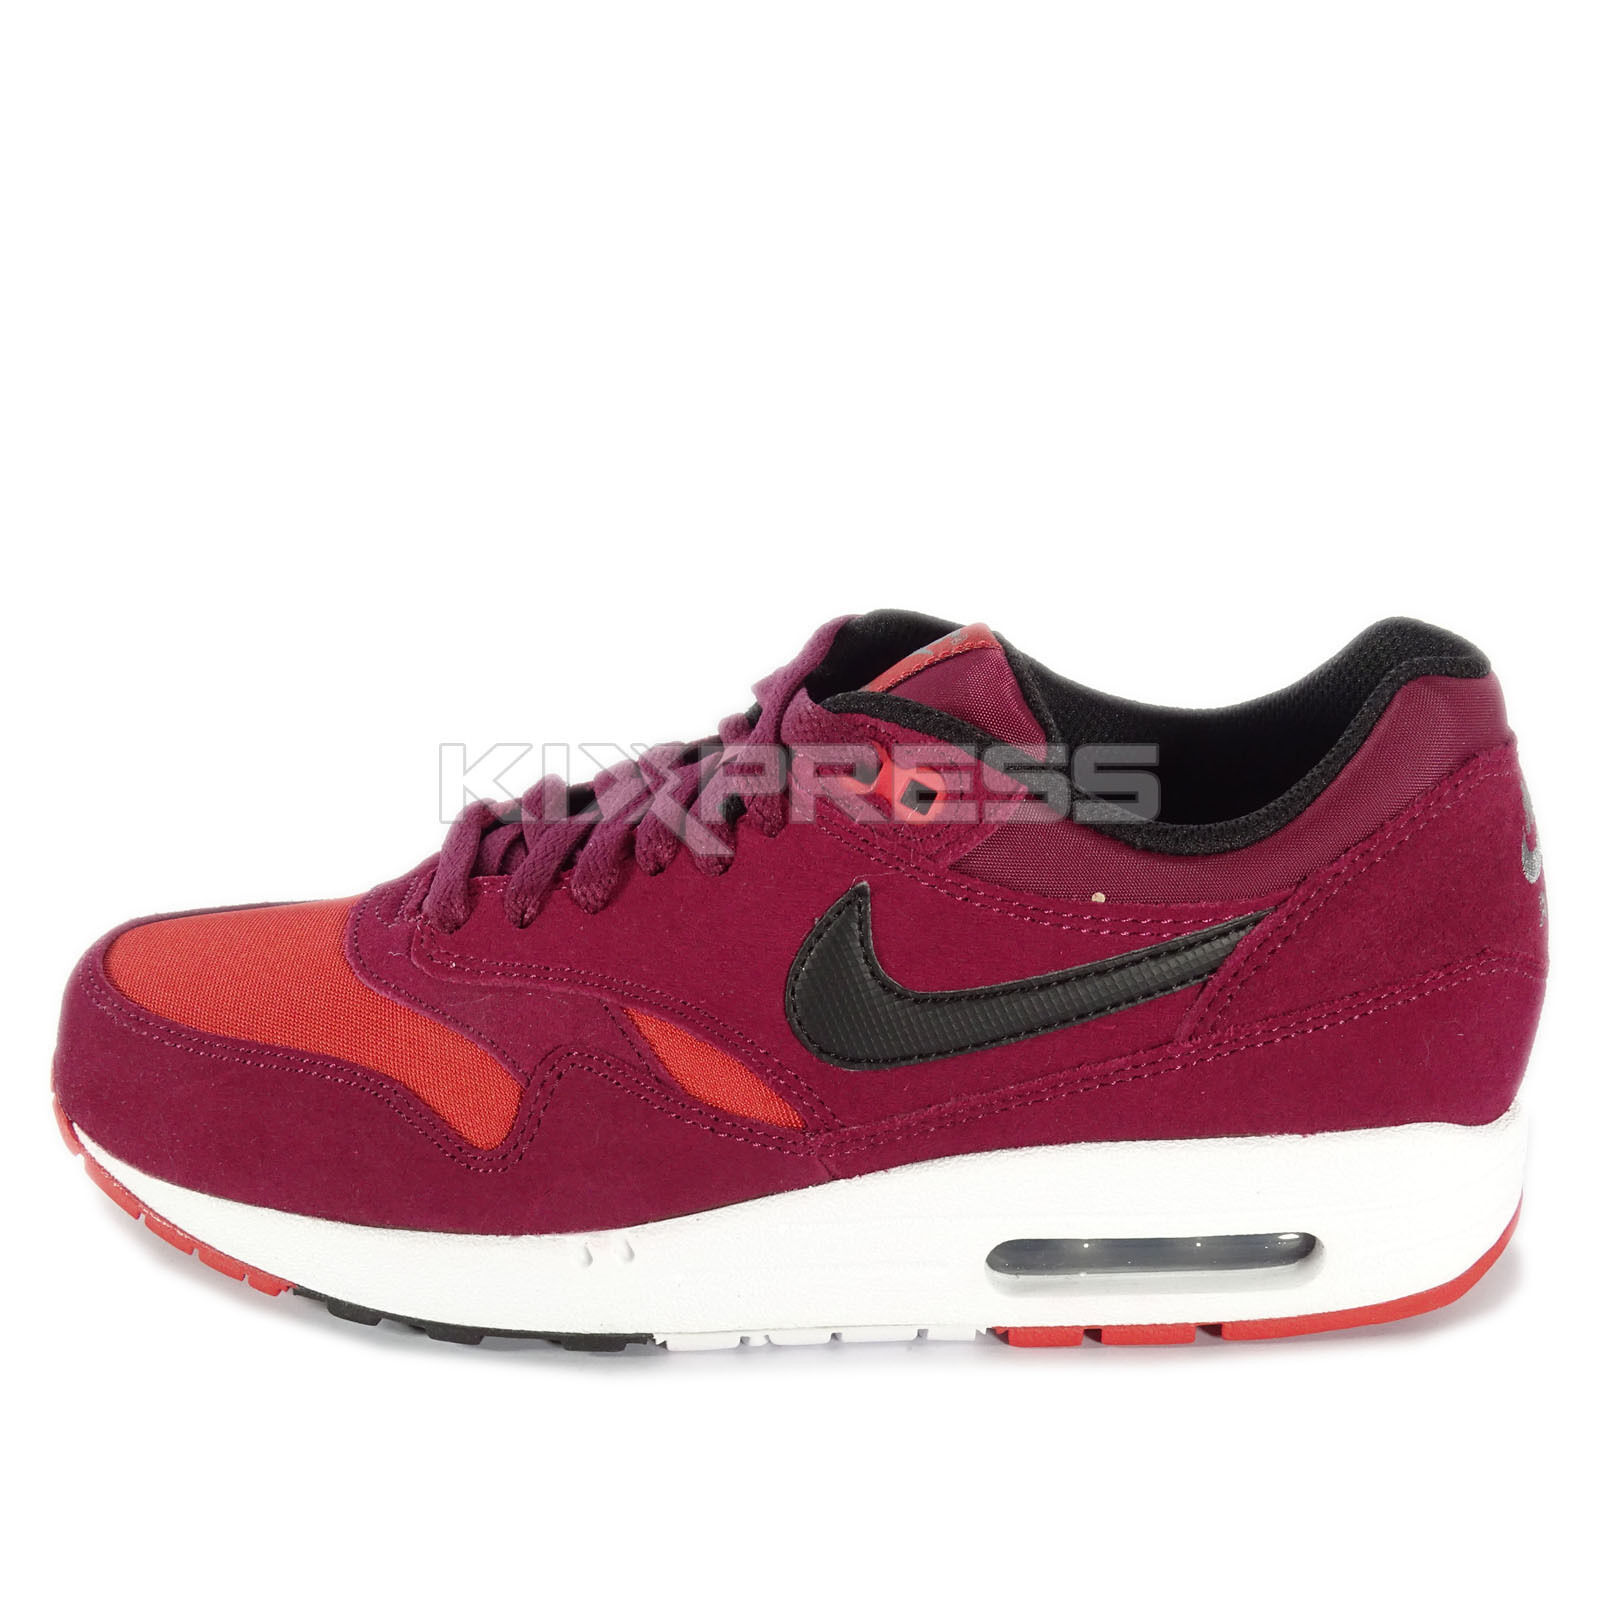 Nike Air Max 1 Essential Price reduction NSW Running Deep Garnet/Black Cheap and beautiful fashion